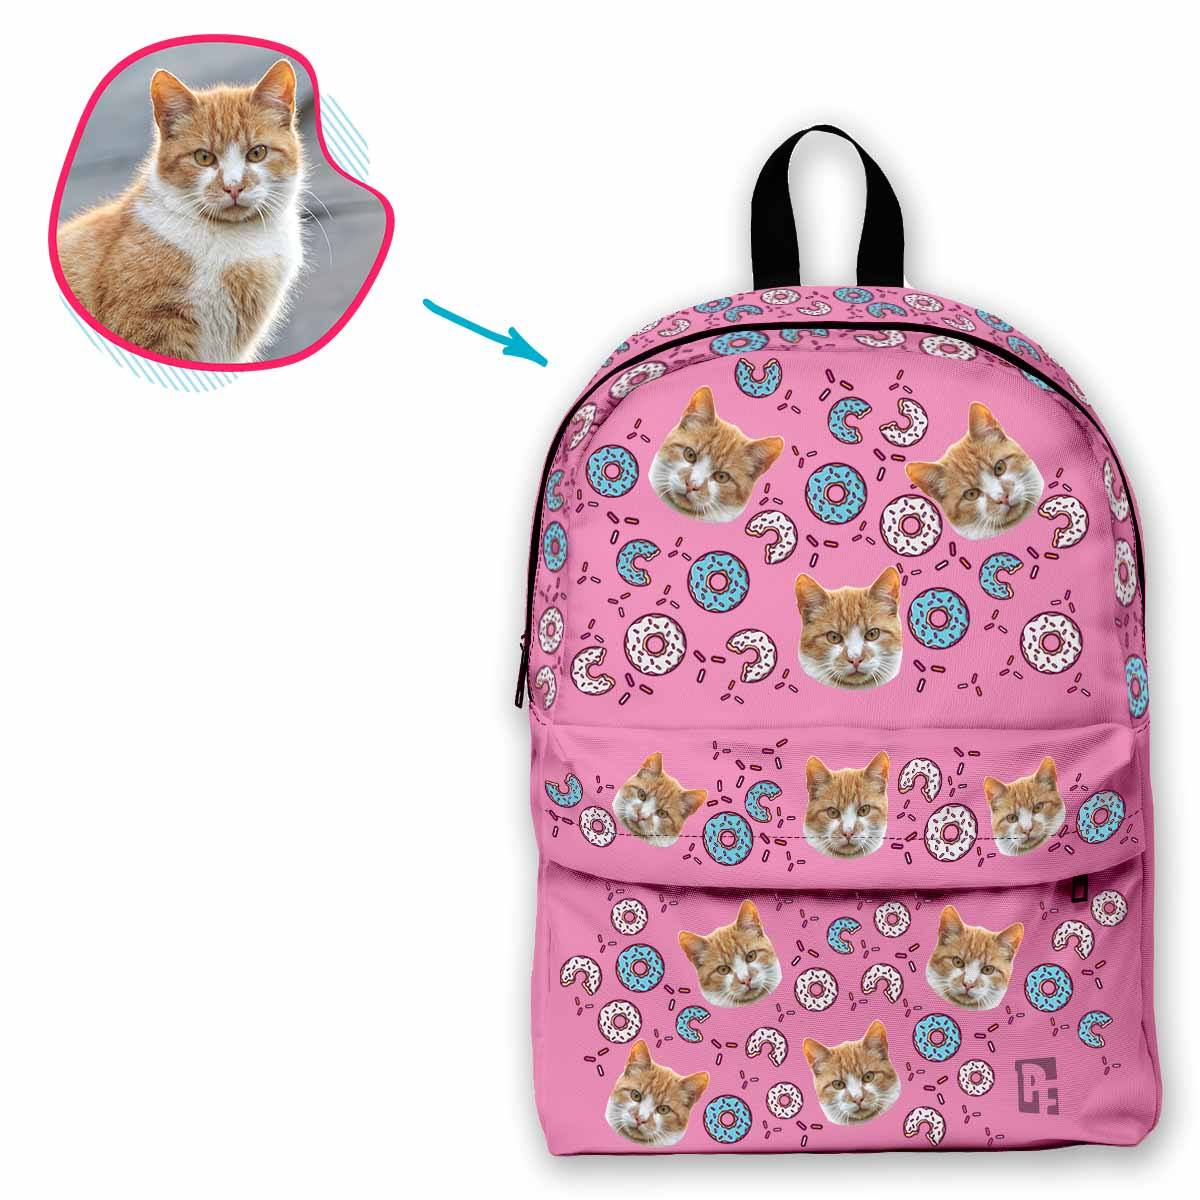 pink Donuts classic backpack personalized with photo of face printed on it